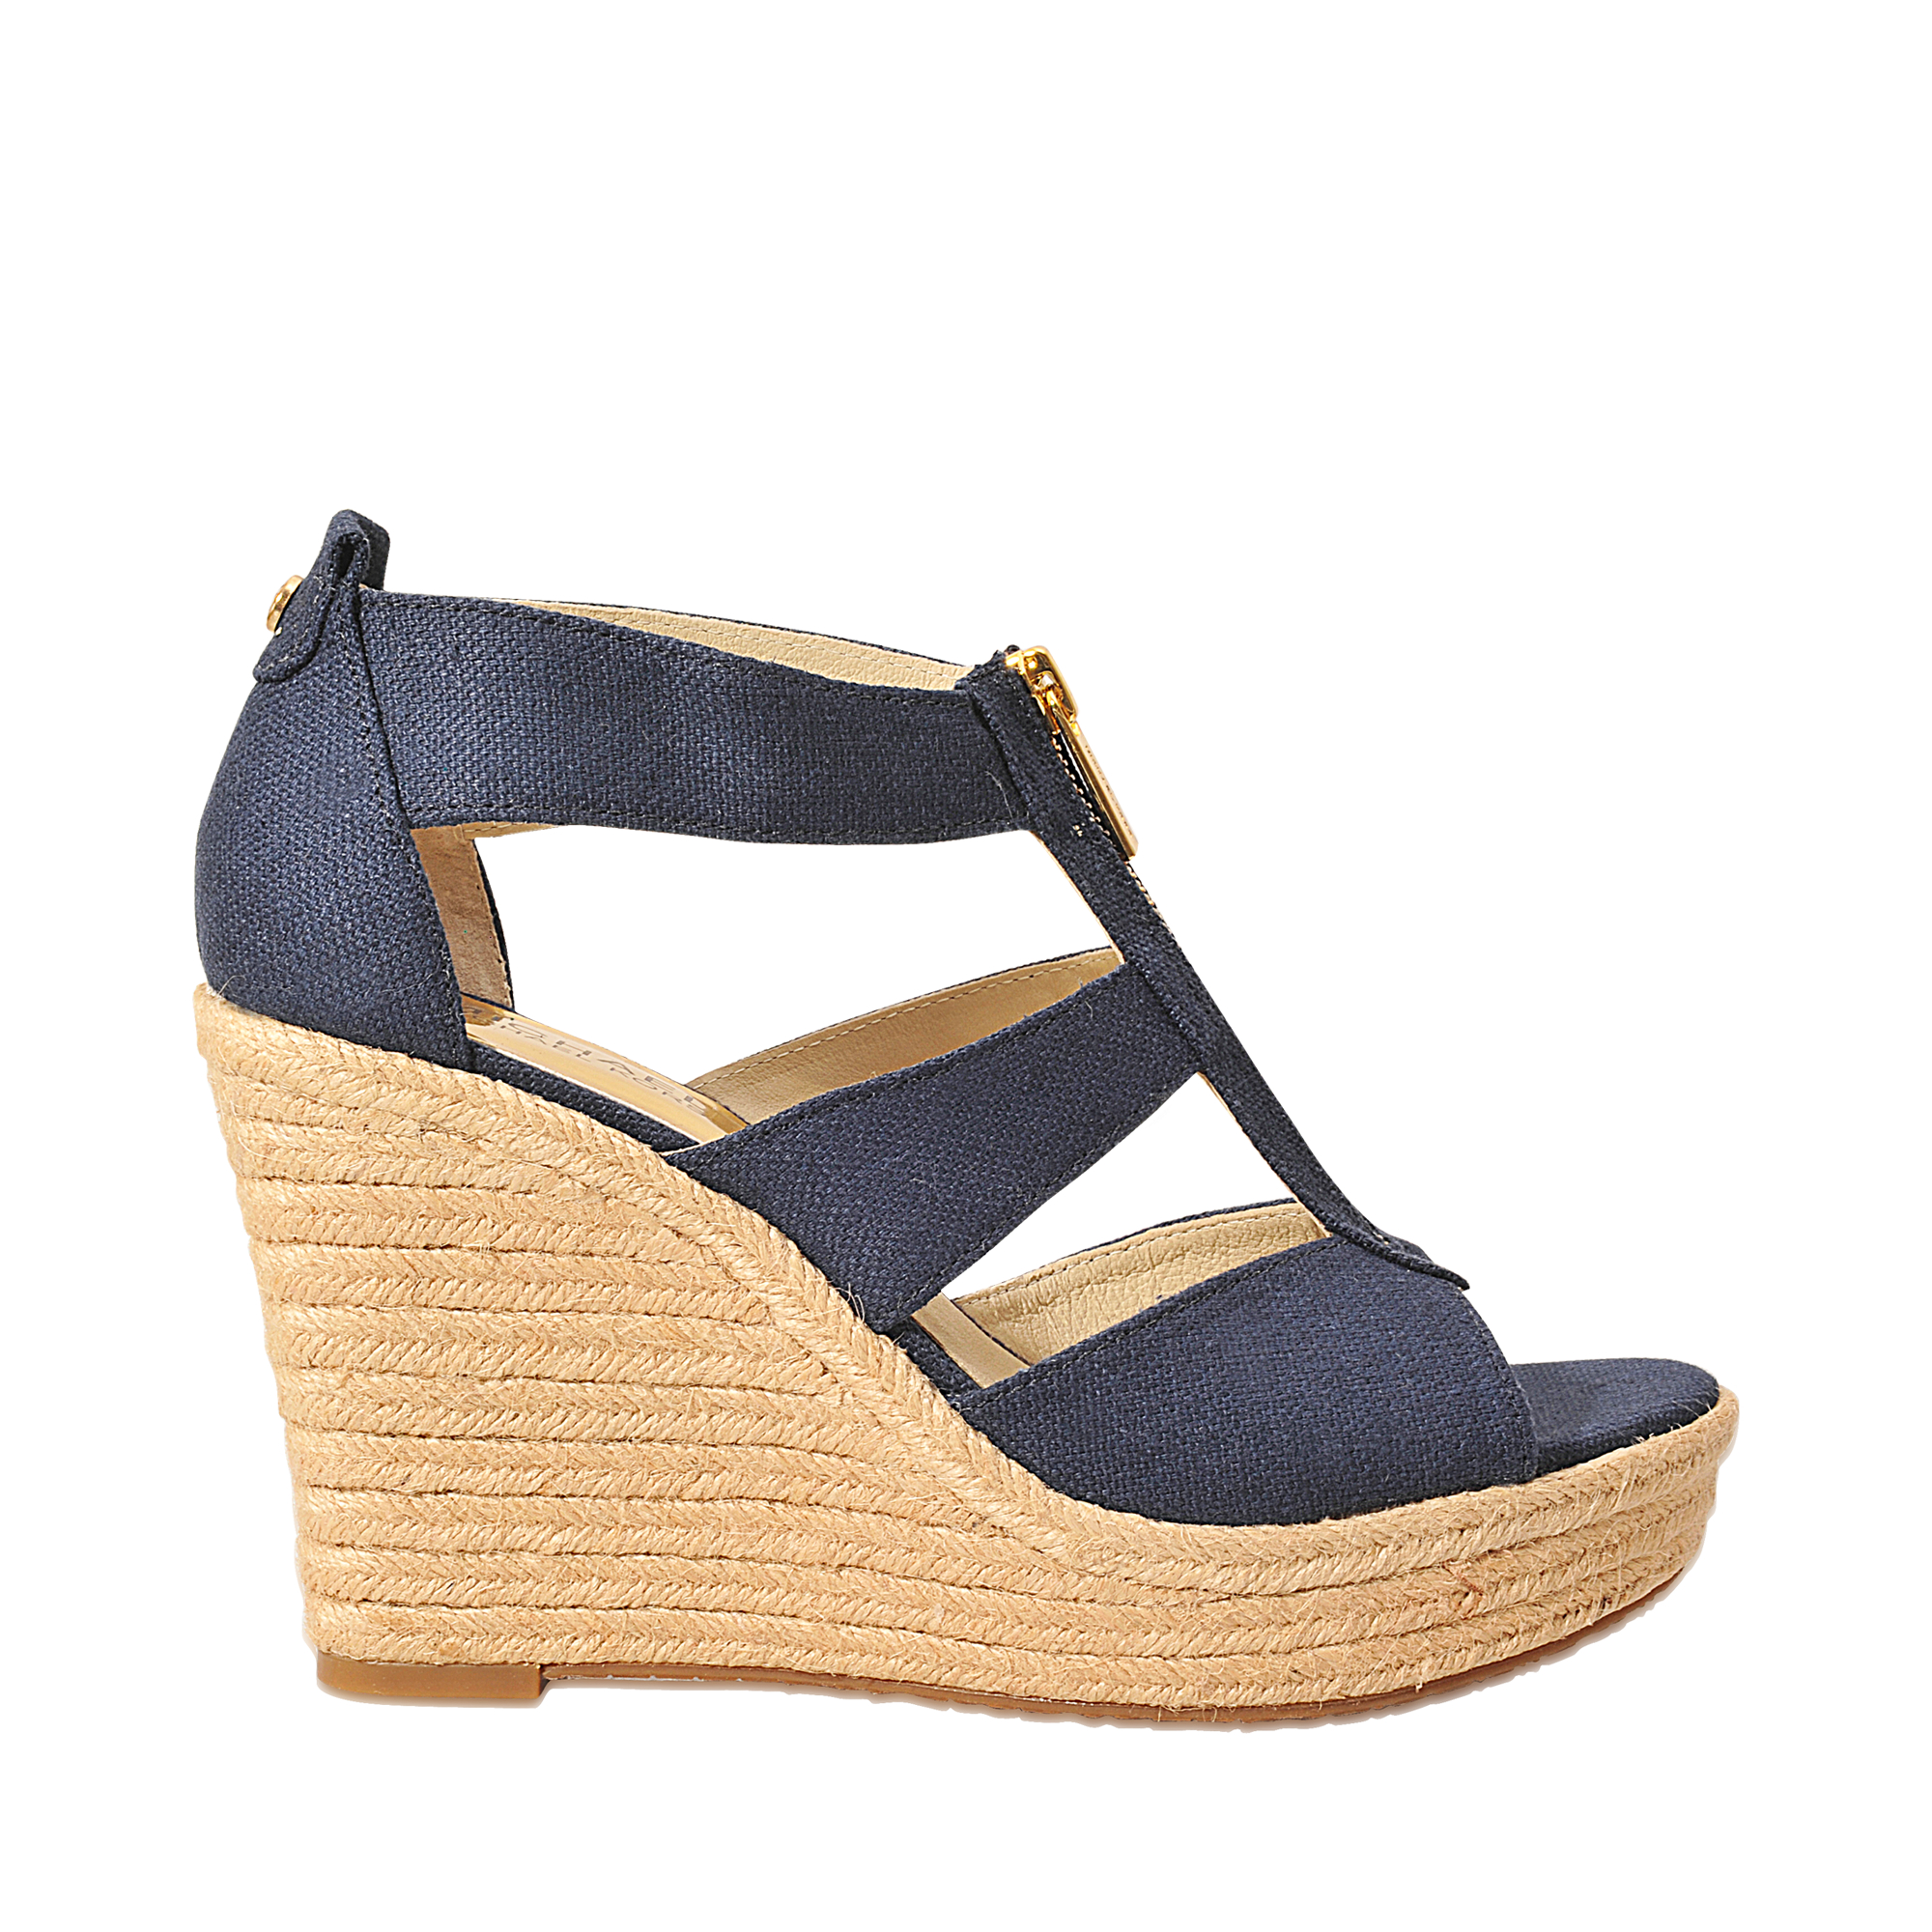 80b4e77a5d57 Lyst - MICHAEL Michael Kors Damita Wedge in Blue